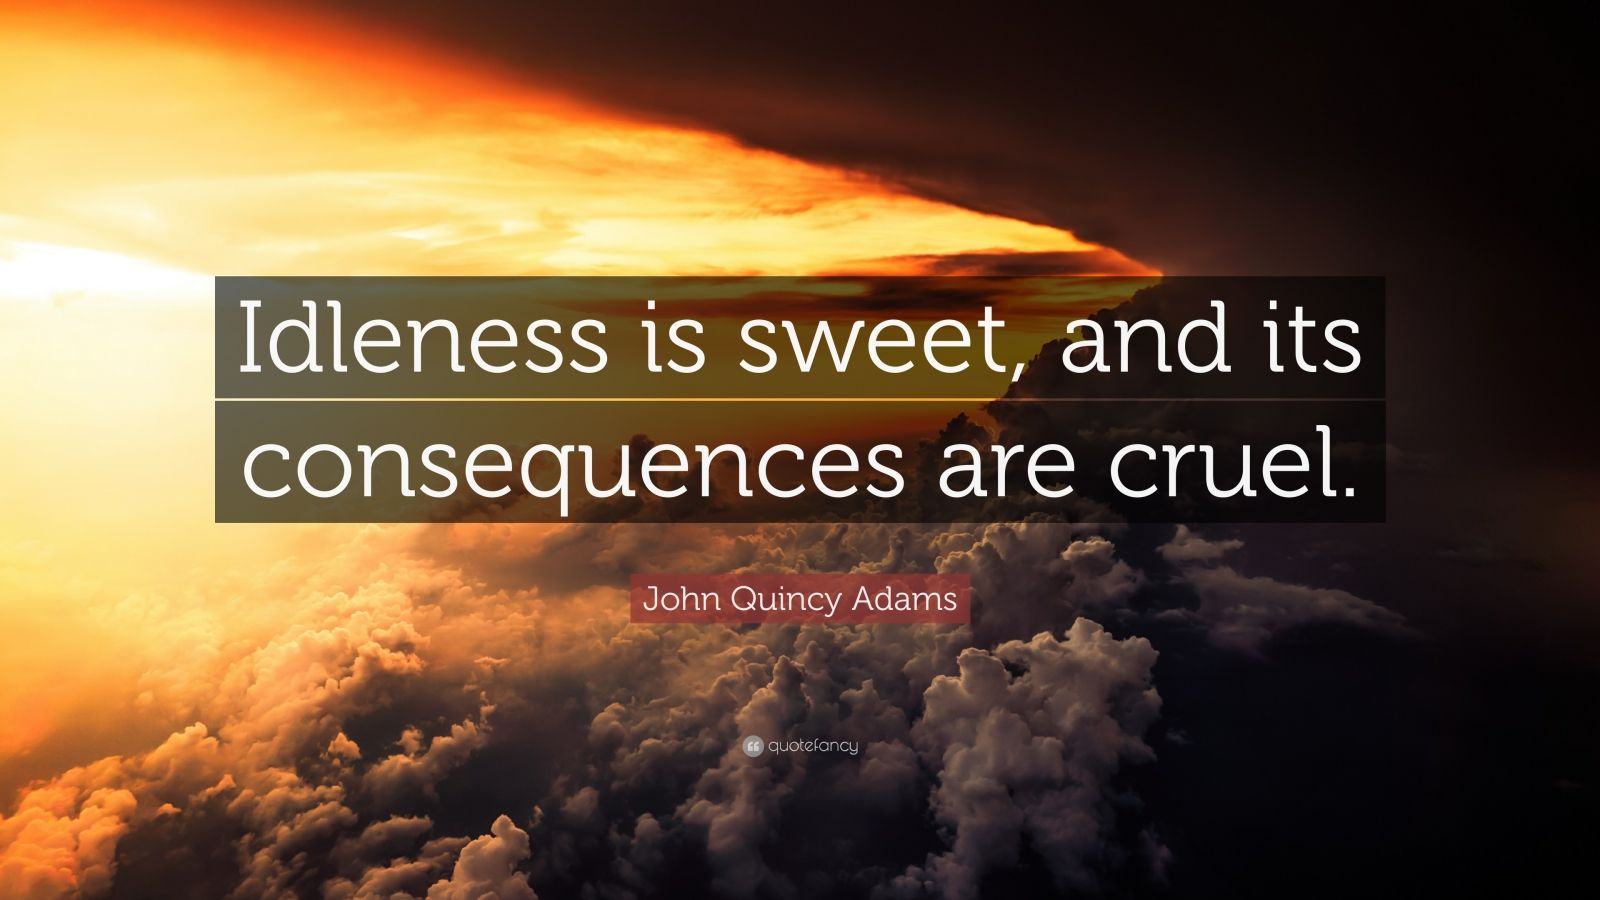 """John Quincy Adams Quote: """"Idleness is sweet, and its consequences are cruel."""""""